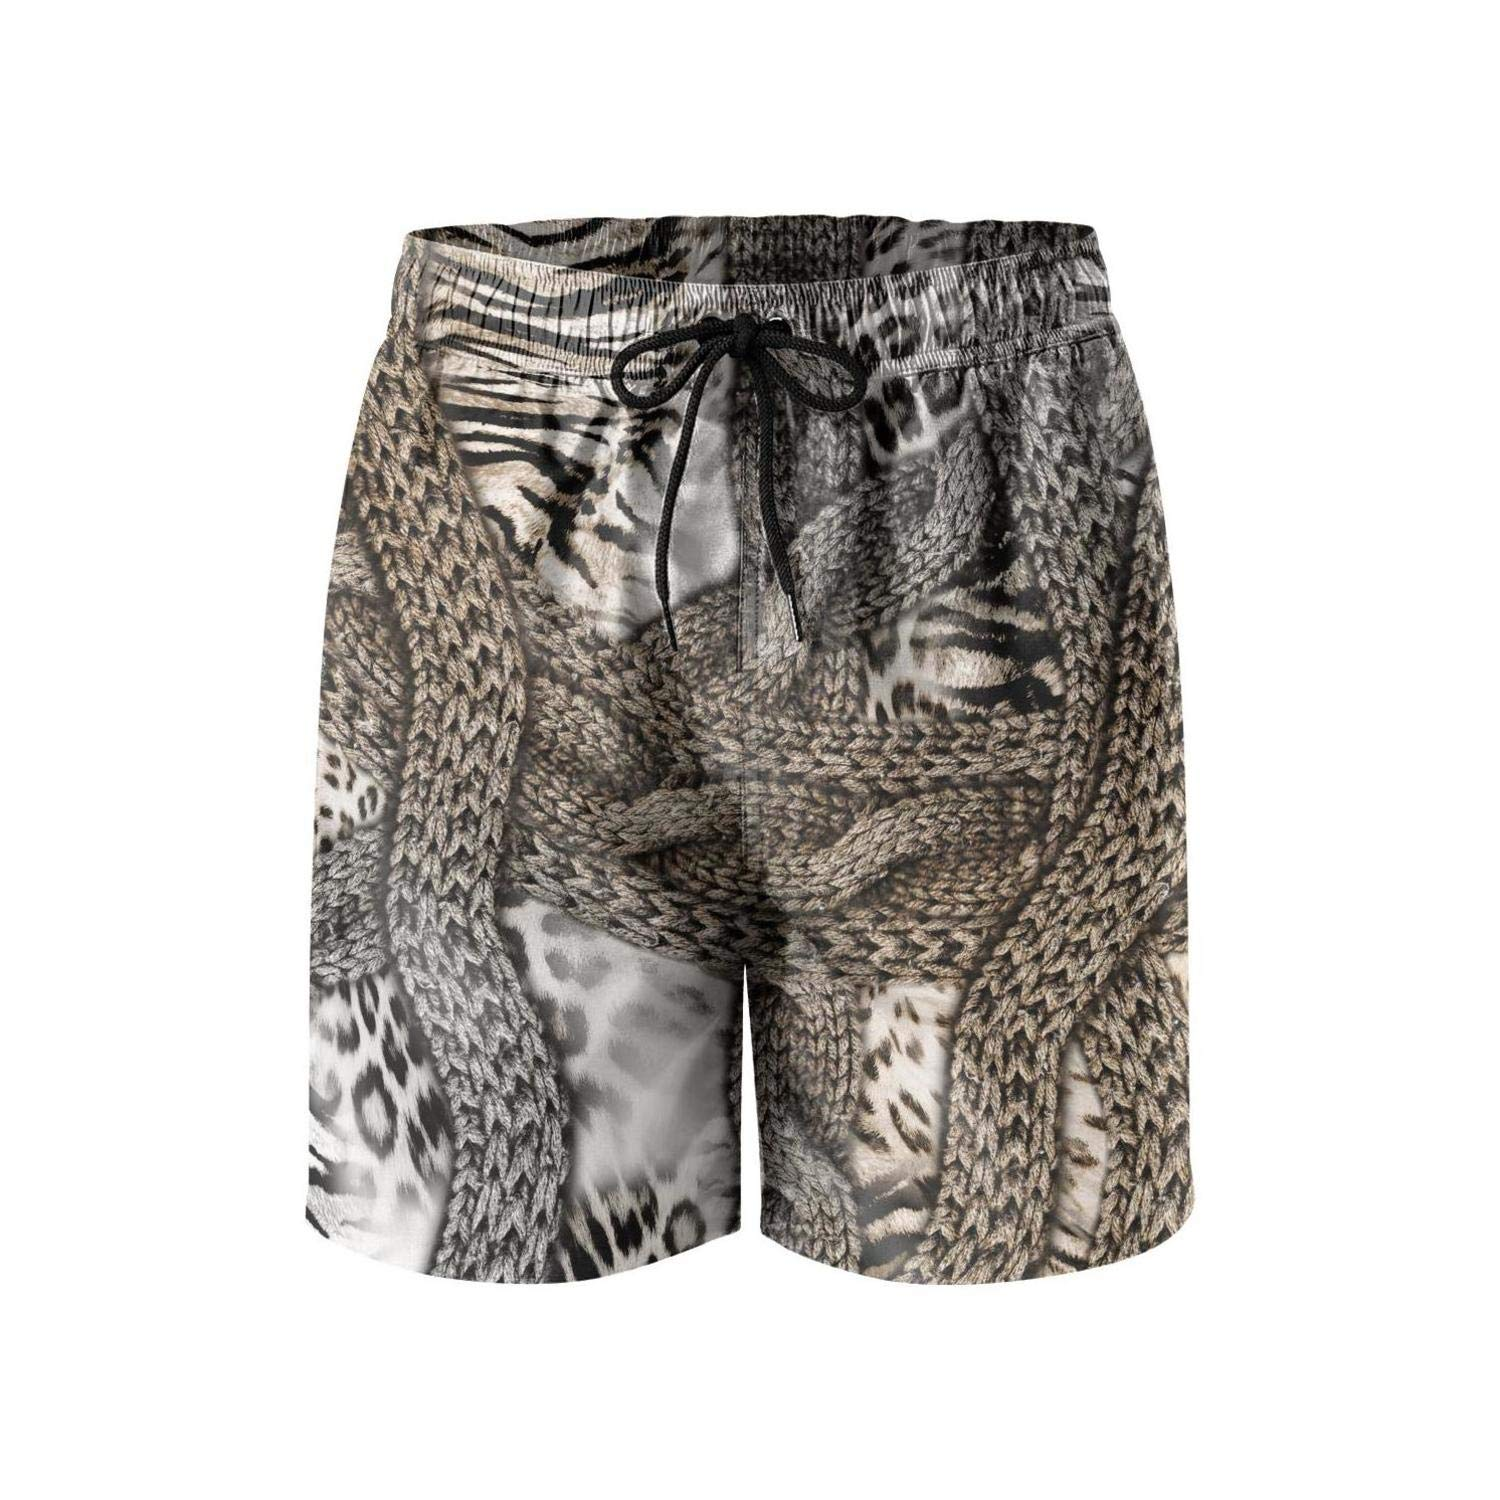 Mans Casual Shorts Snakeskin and Leopard Swimming Trunks Quick Dry Shorts